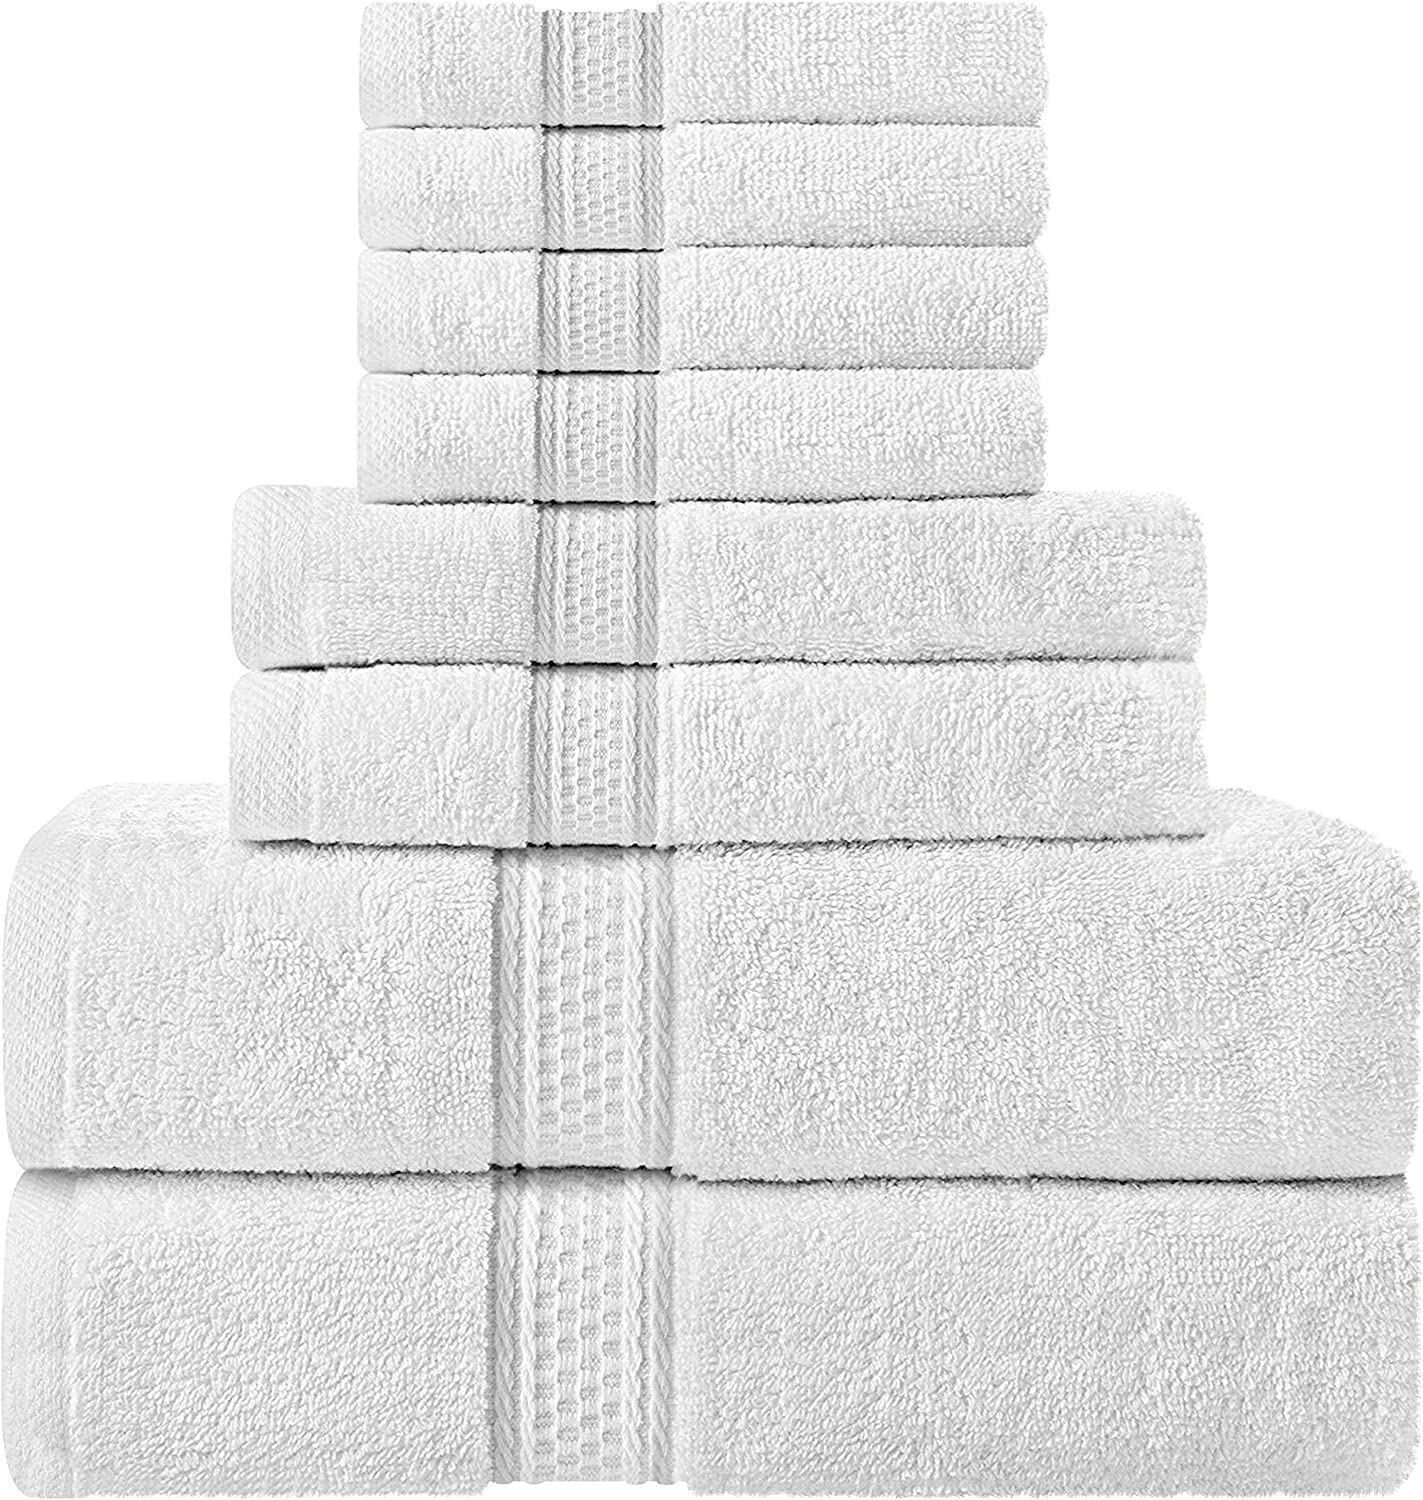 Utopia Towels Towel Set, 2 Bath Towels, 2 Hand Towels, and 4 Washcloths, 600 GSM 100% Premium Ring Spun Cotton Highly Absorbent Towels for Bathroom, Shower Towel, (Pack of 8): Home & Kitchen